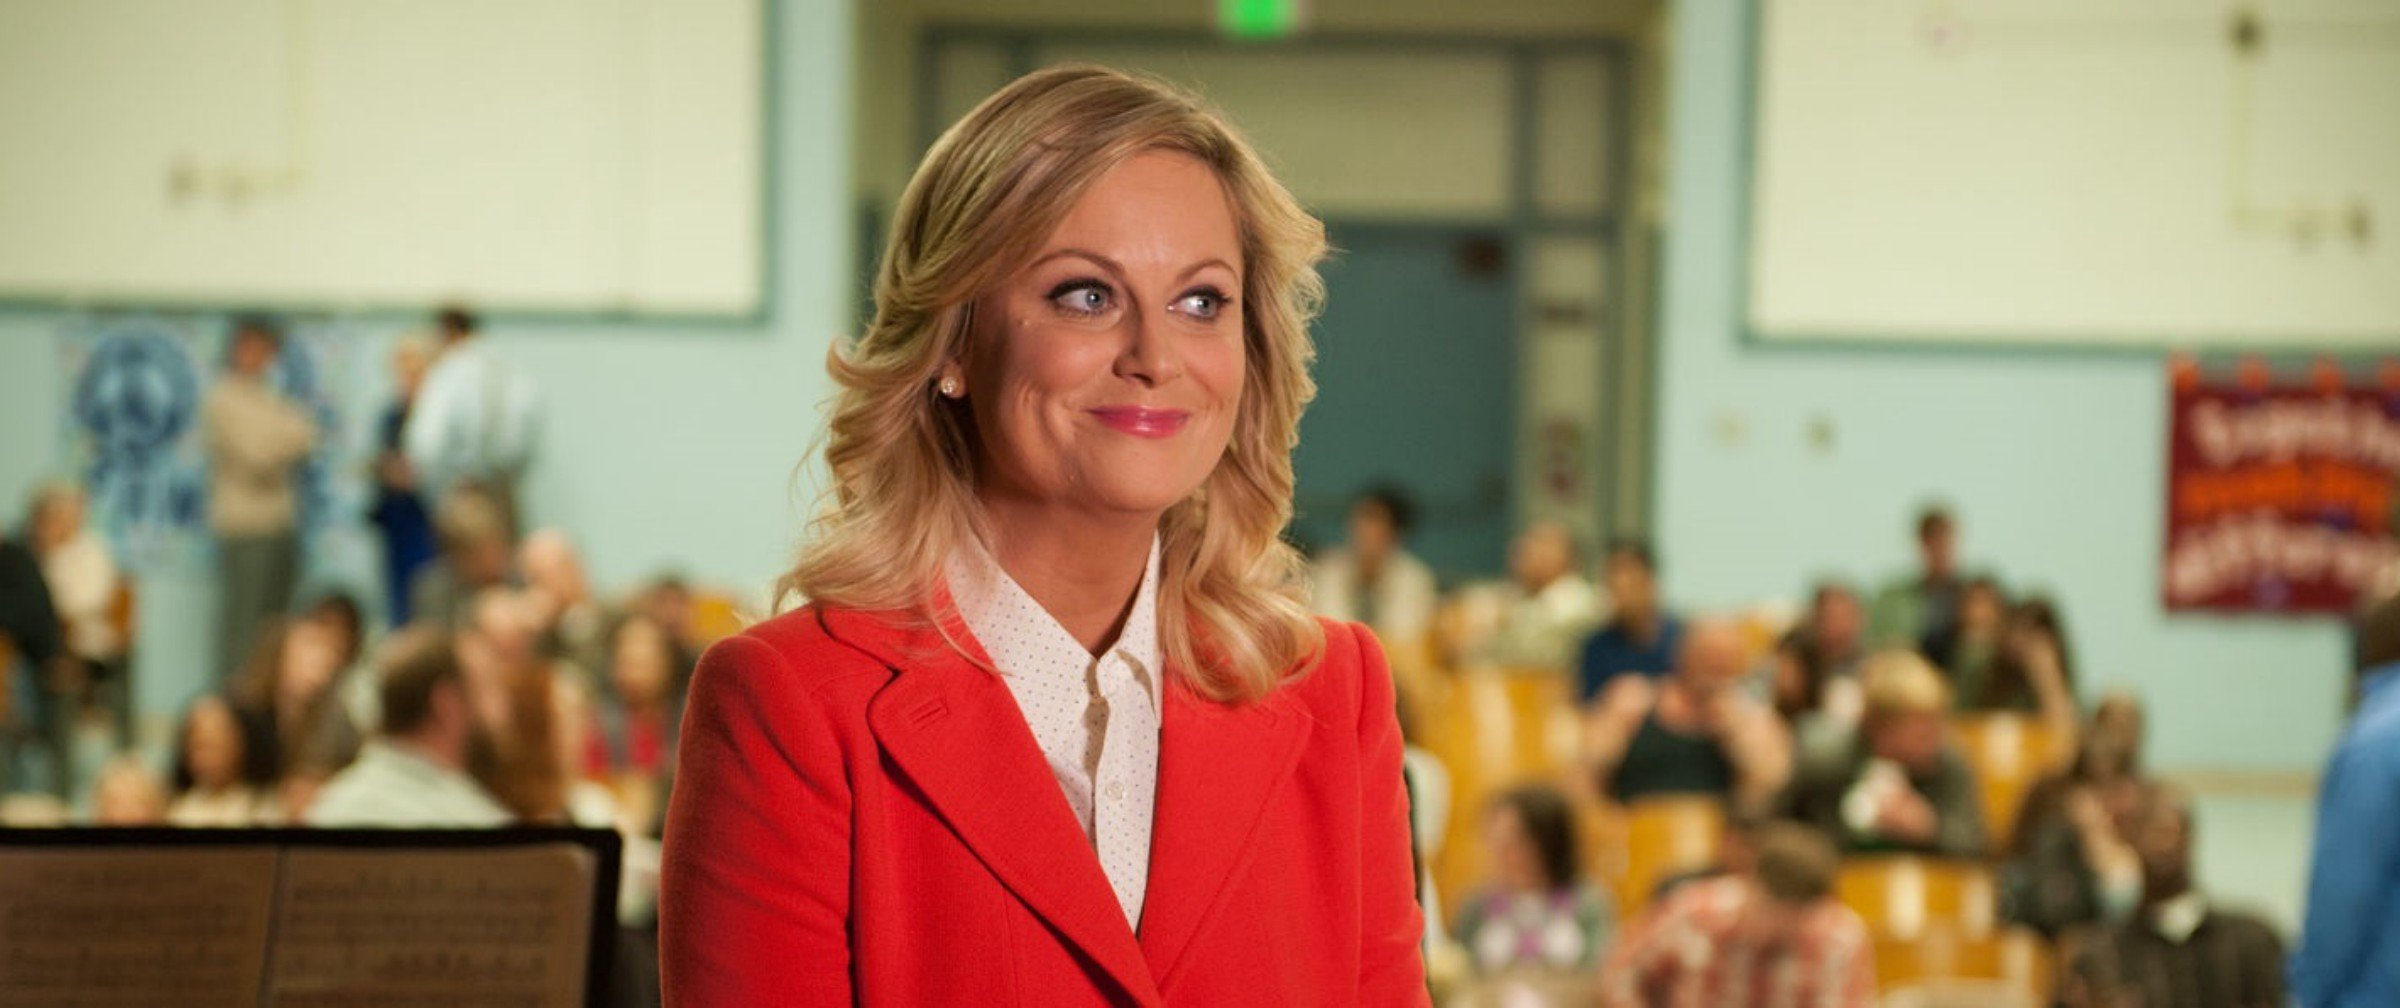 Leadership Lessons We Can All Learn from Leslie Knope